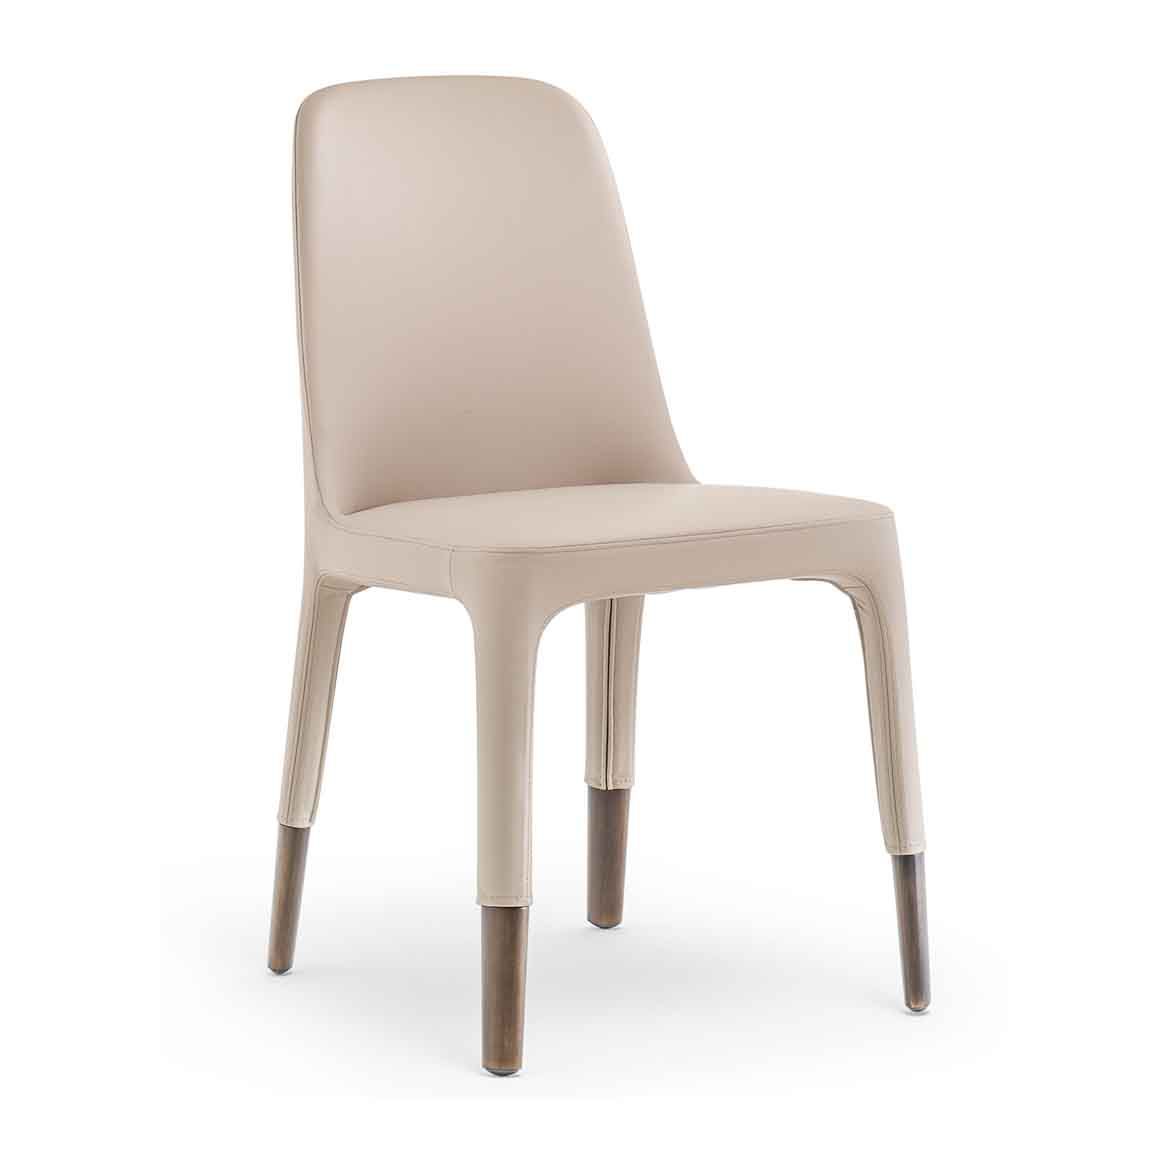 Satin aluminum,  brushed bronze or black nichel legs. Upholstered seat, available in a wide range of textiles or real leather.